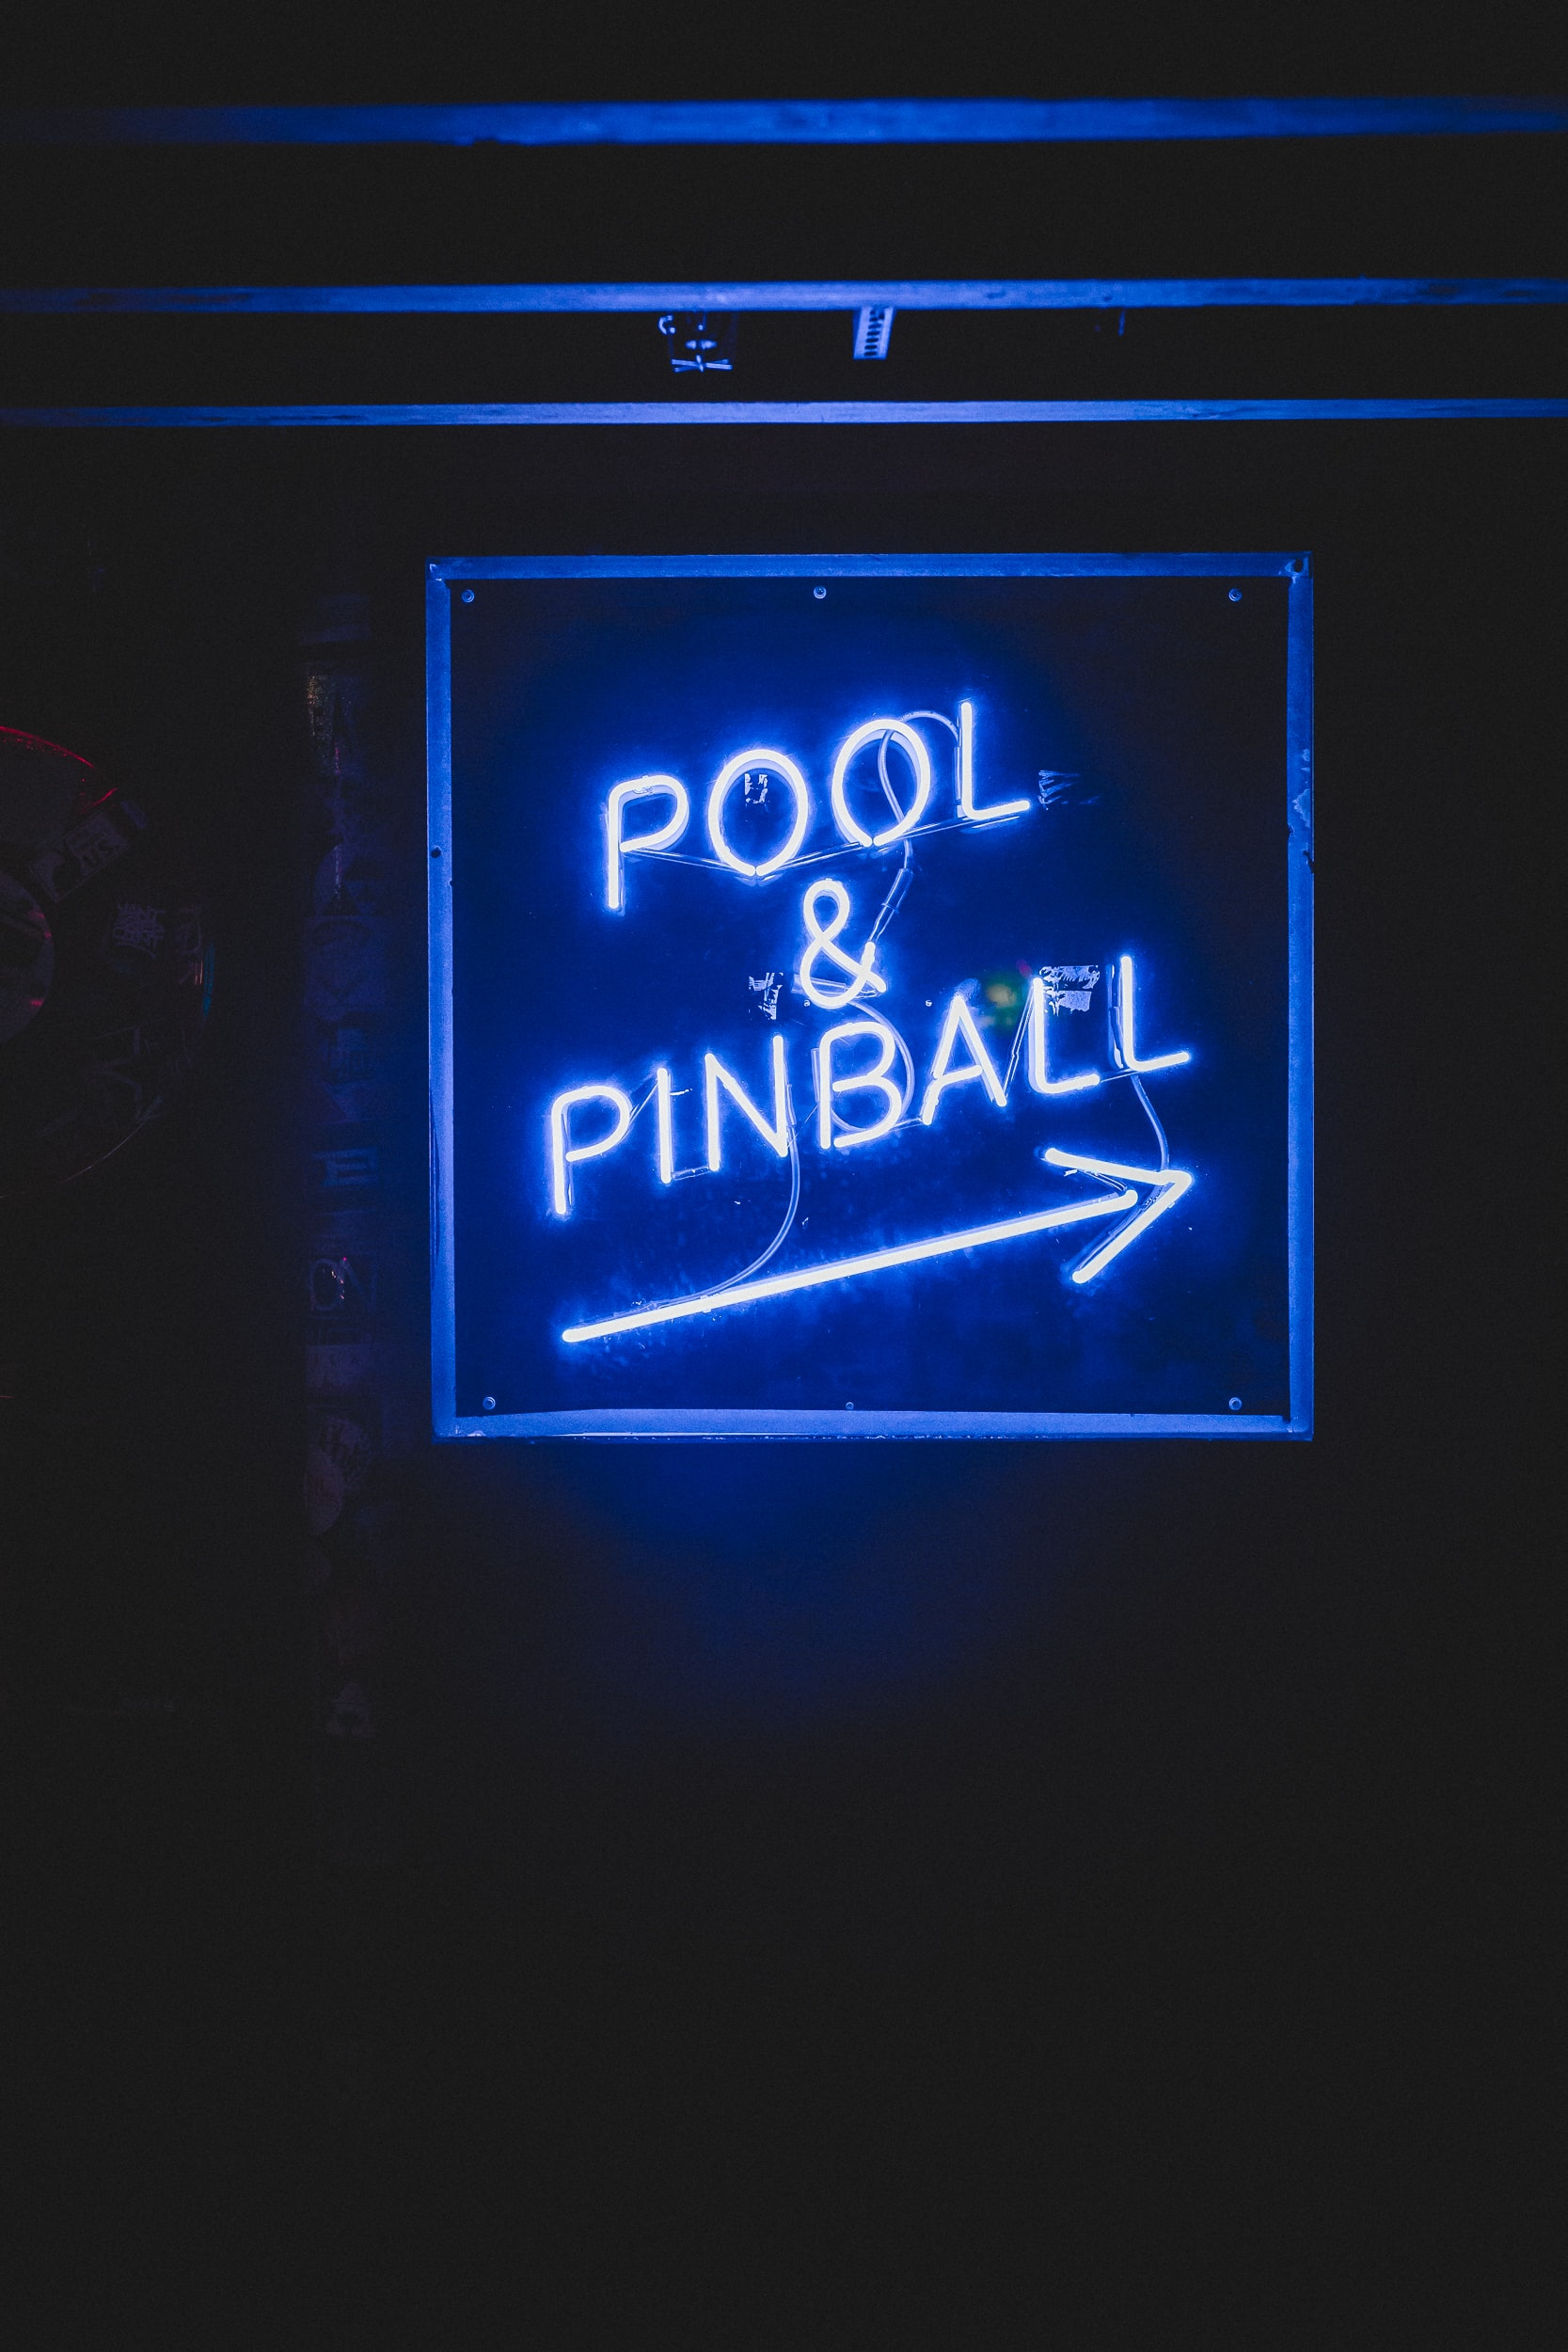 Pool & Pinball neon light signage